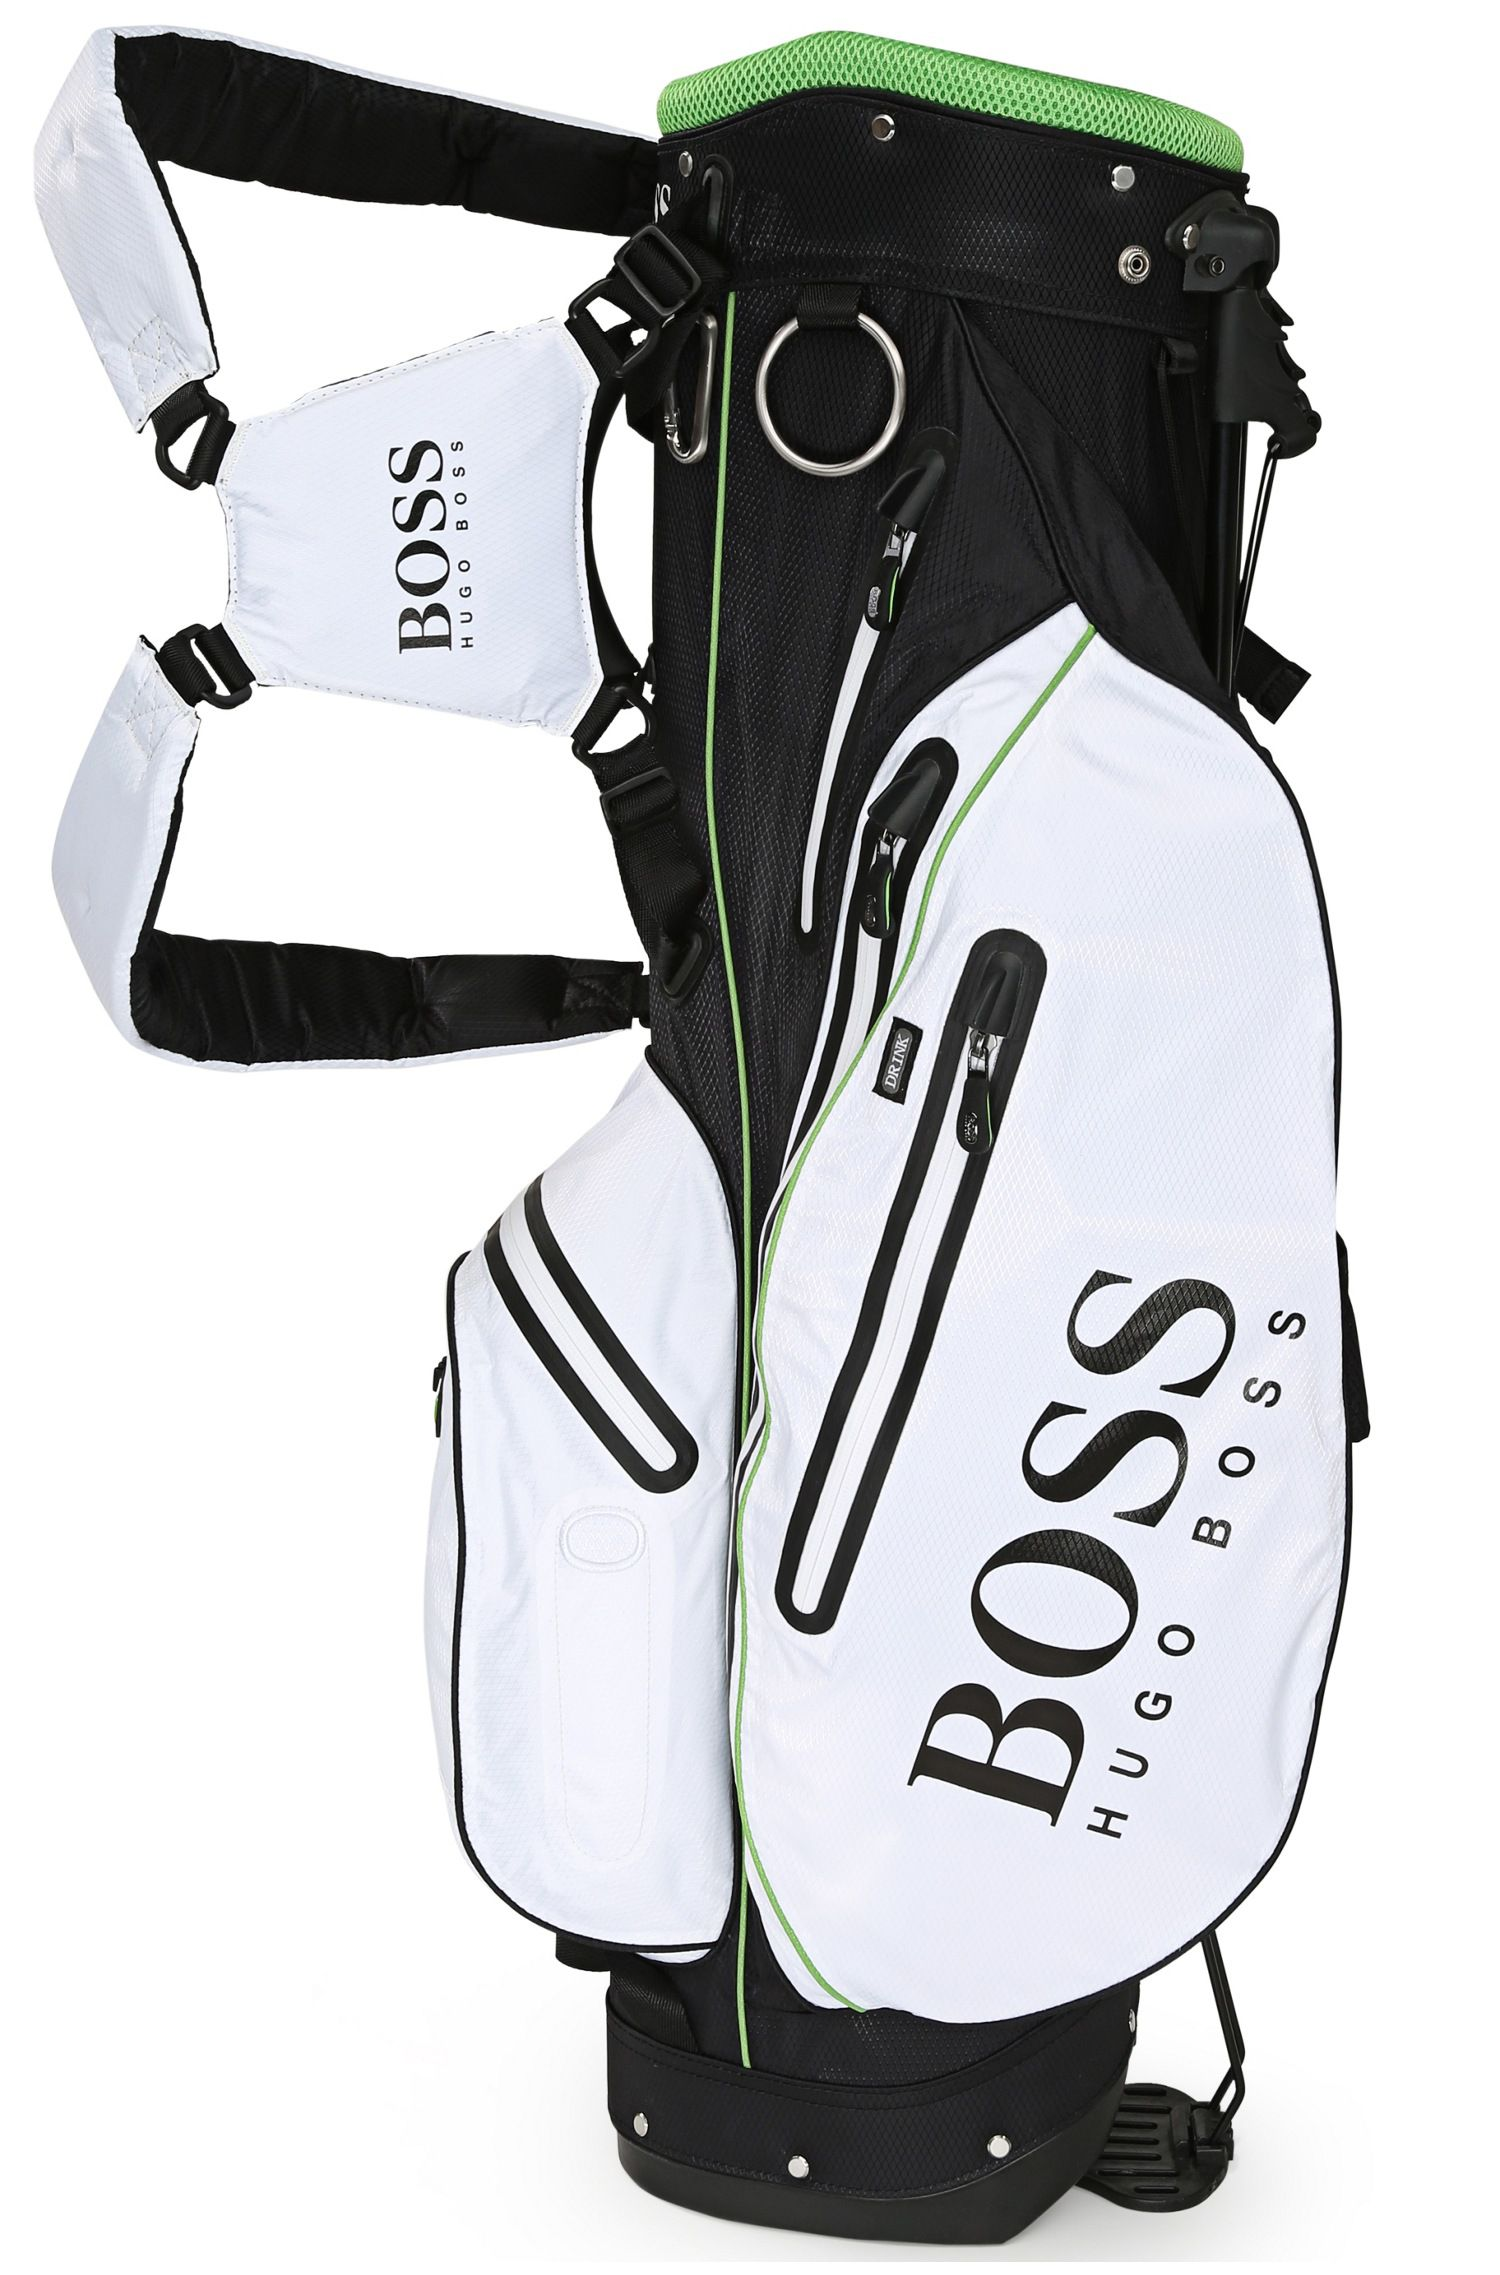 Lightweight golf bag with mesh details